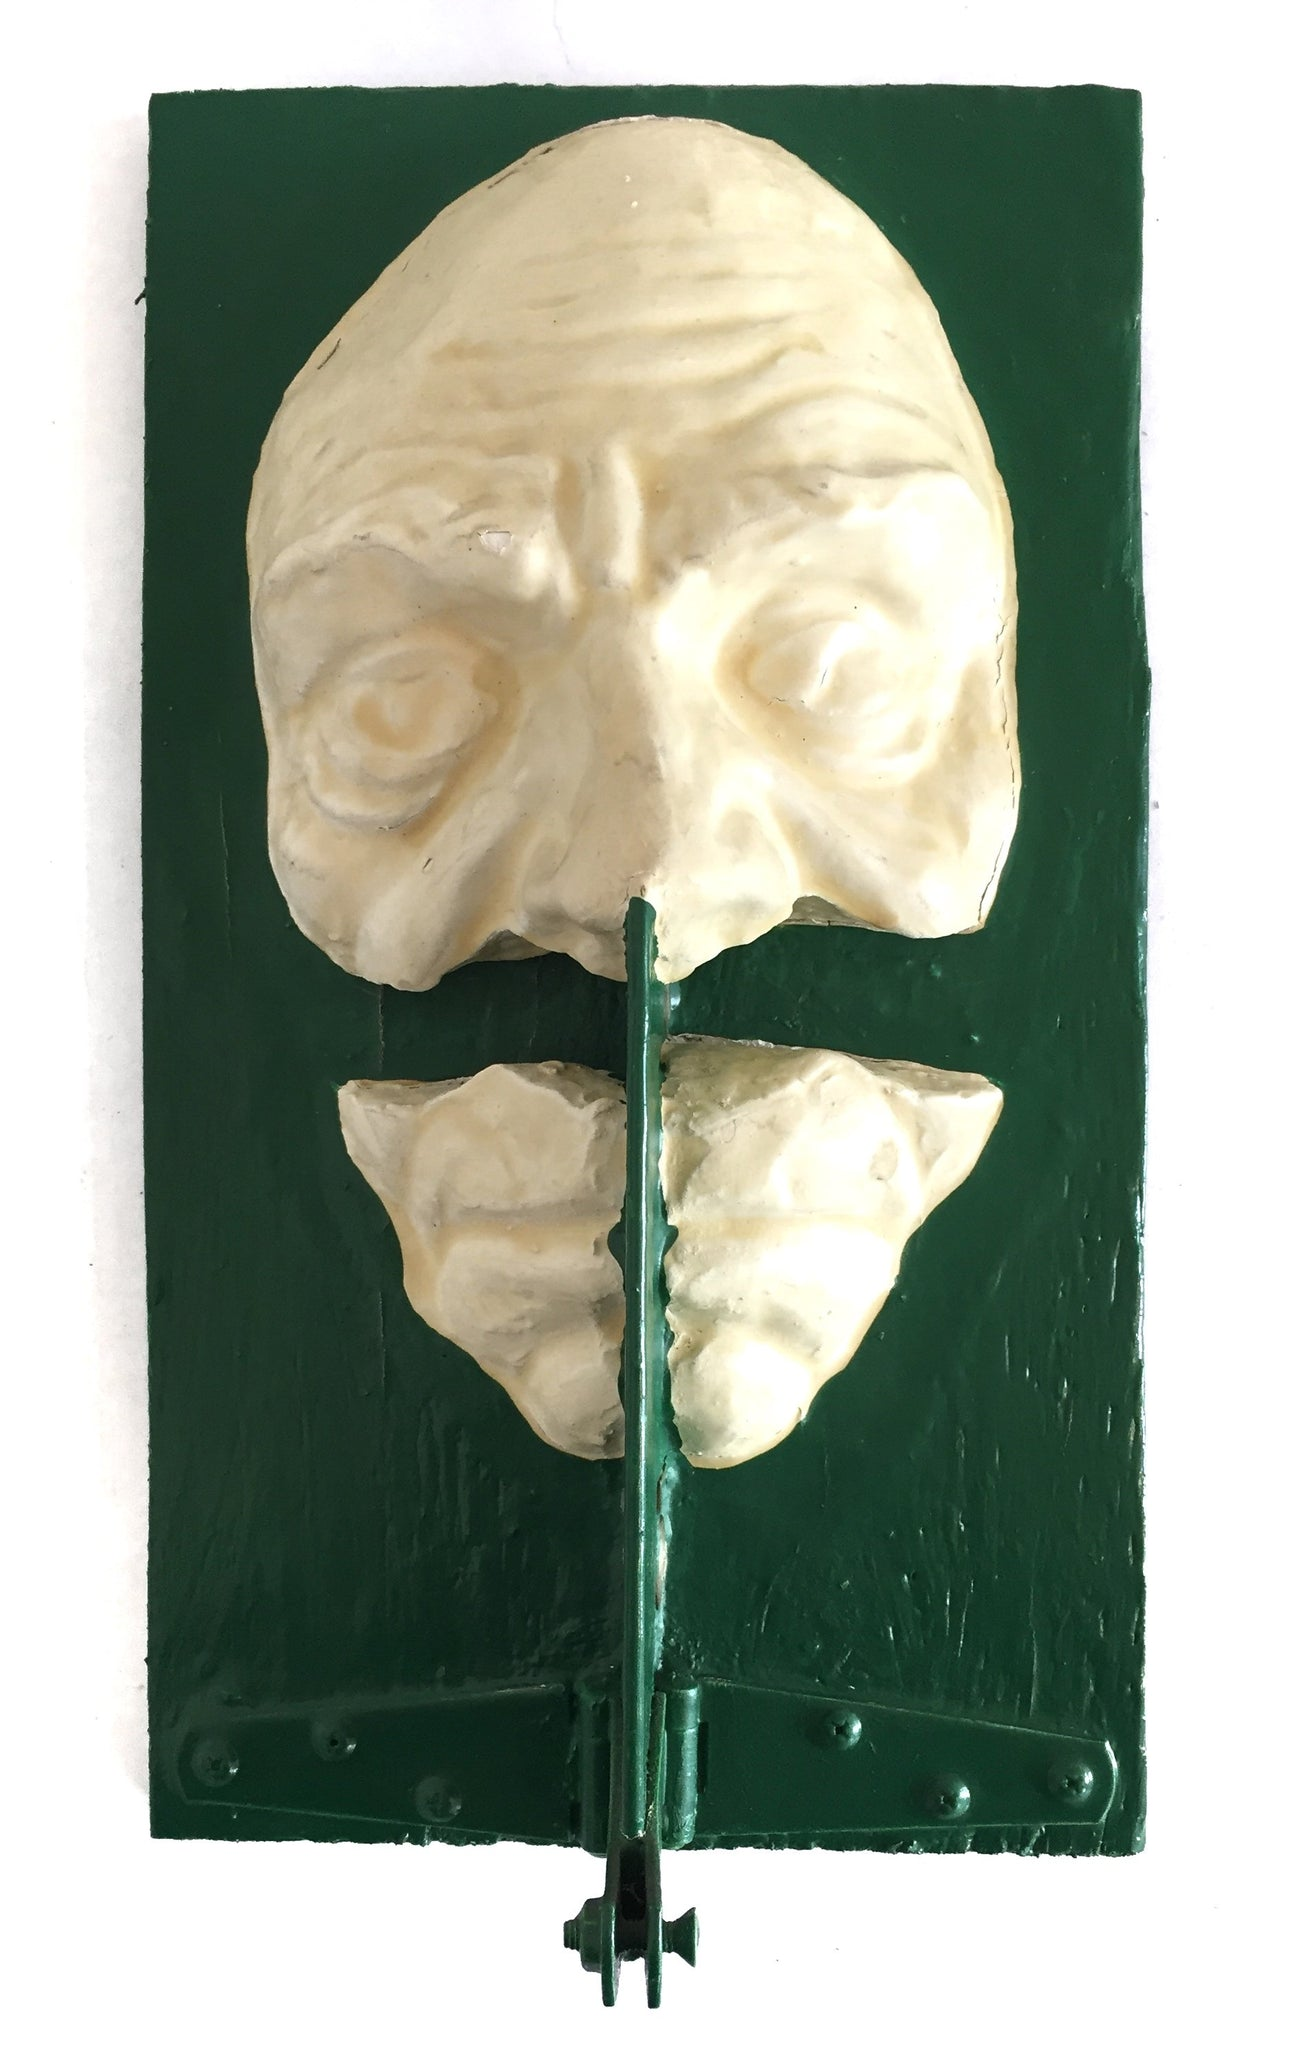 Green mask by Tyler James Hoare